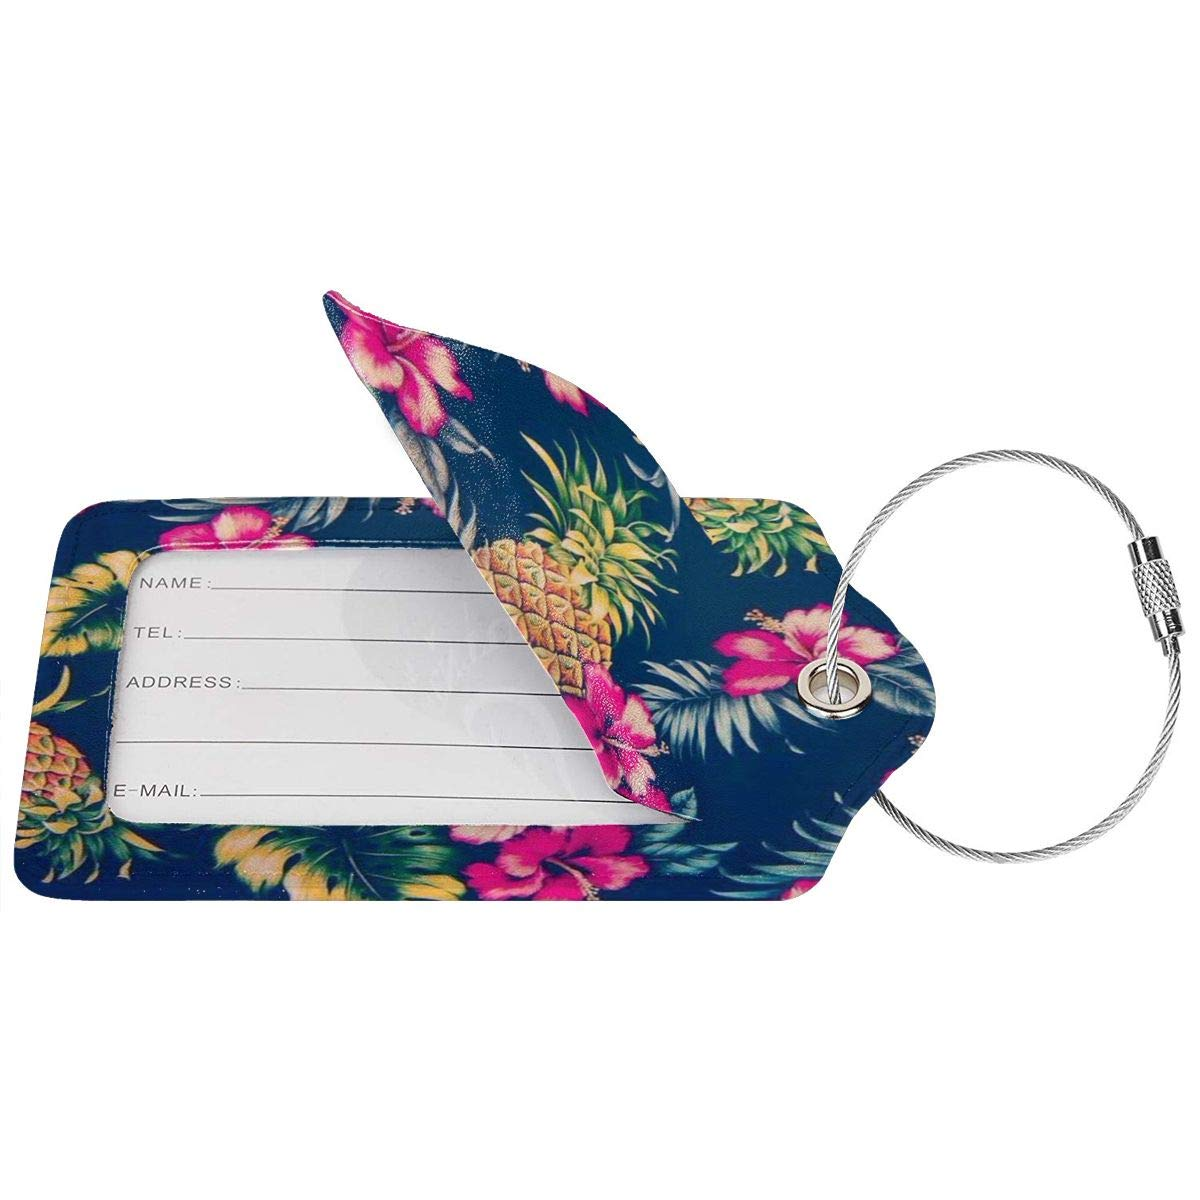 Key Tags for Travel Suitcase Handbags Gift Leather Luggage Tags Full Privacy Cover and Stainless Steel Loop 1 2 4 Pcs Set Hawaiian Flower Party 2.7 x 4.6 Blank Tag